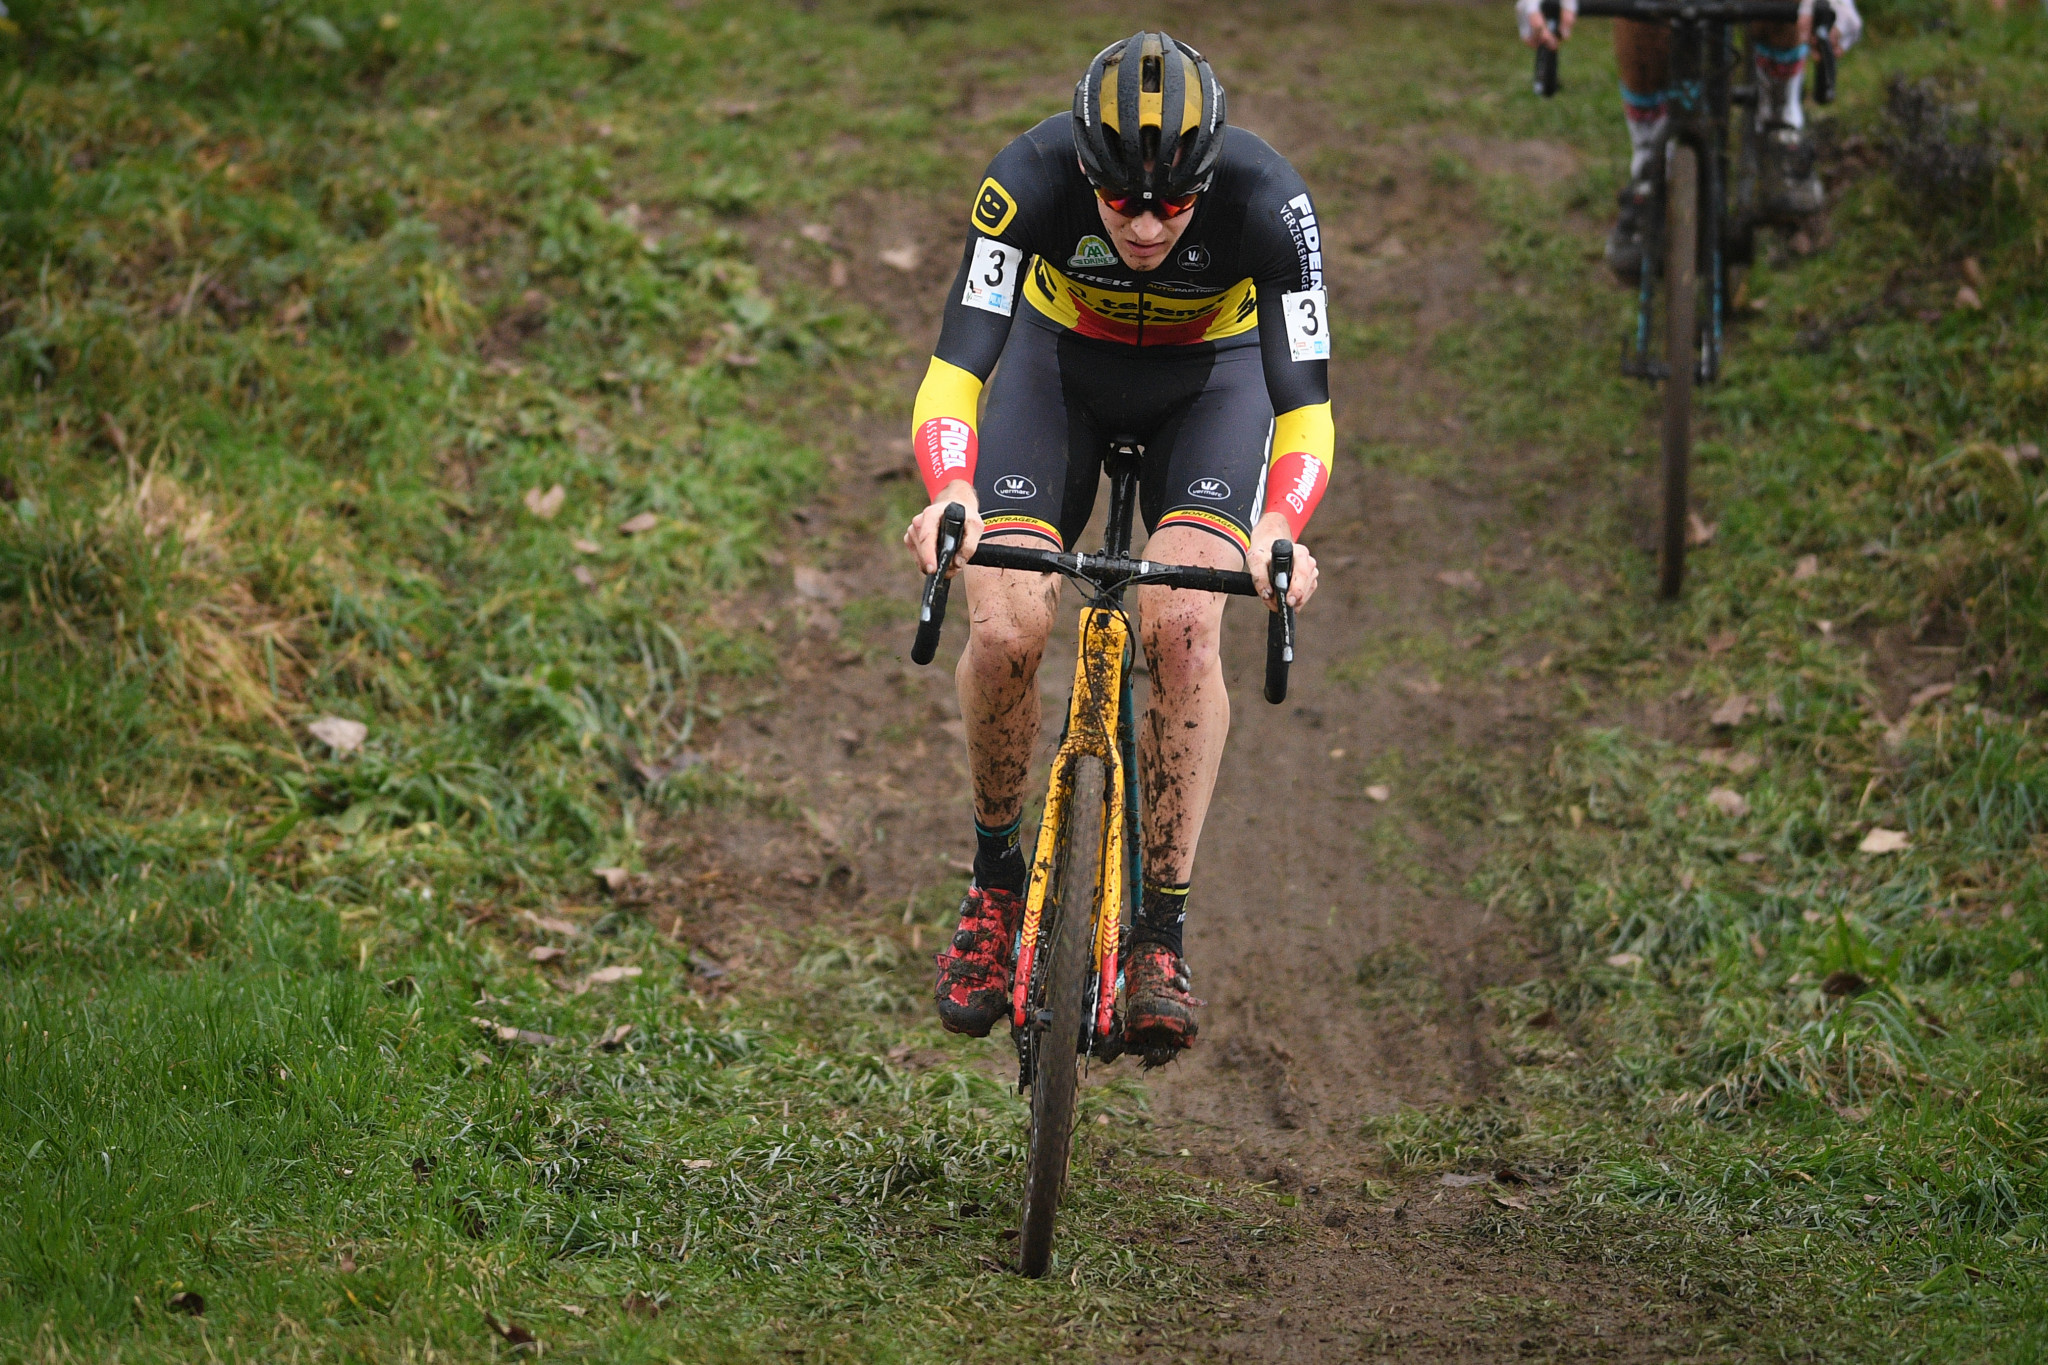 Pont Chateau ready to host battle of the Belgians at UCI Cyclo-Cross World Cup